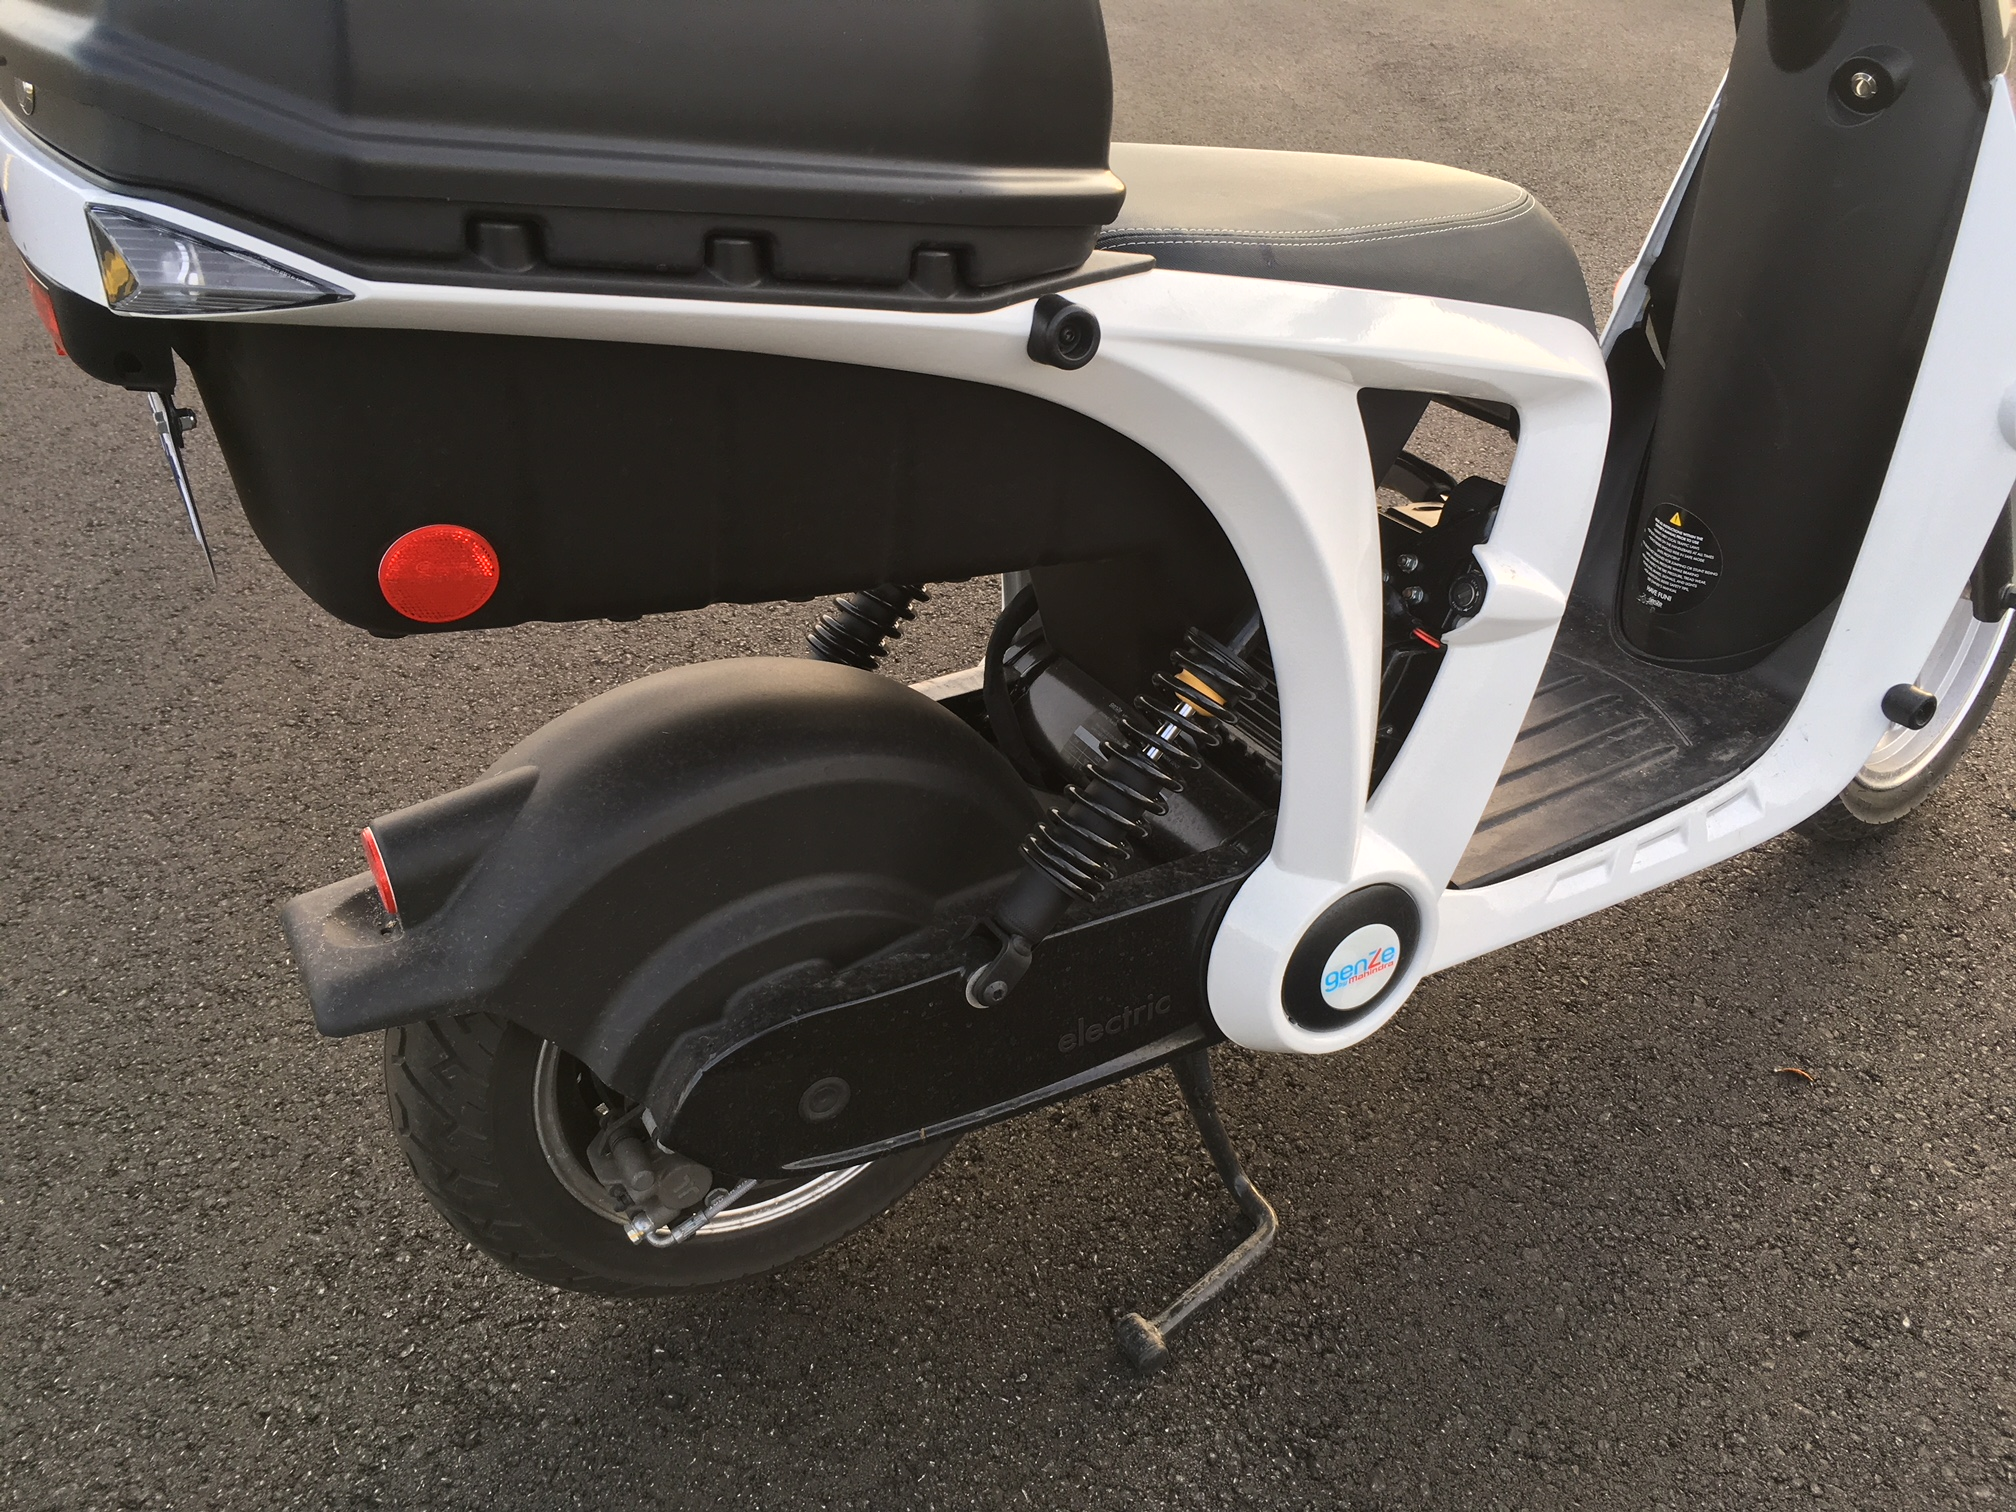 GenZe 2 0 electric scooter review: This awesome EV is a game